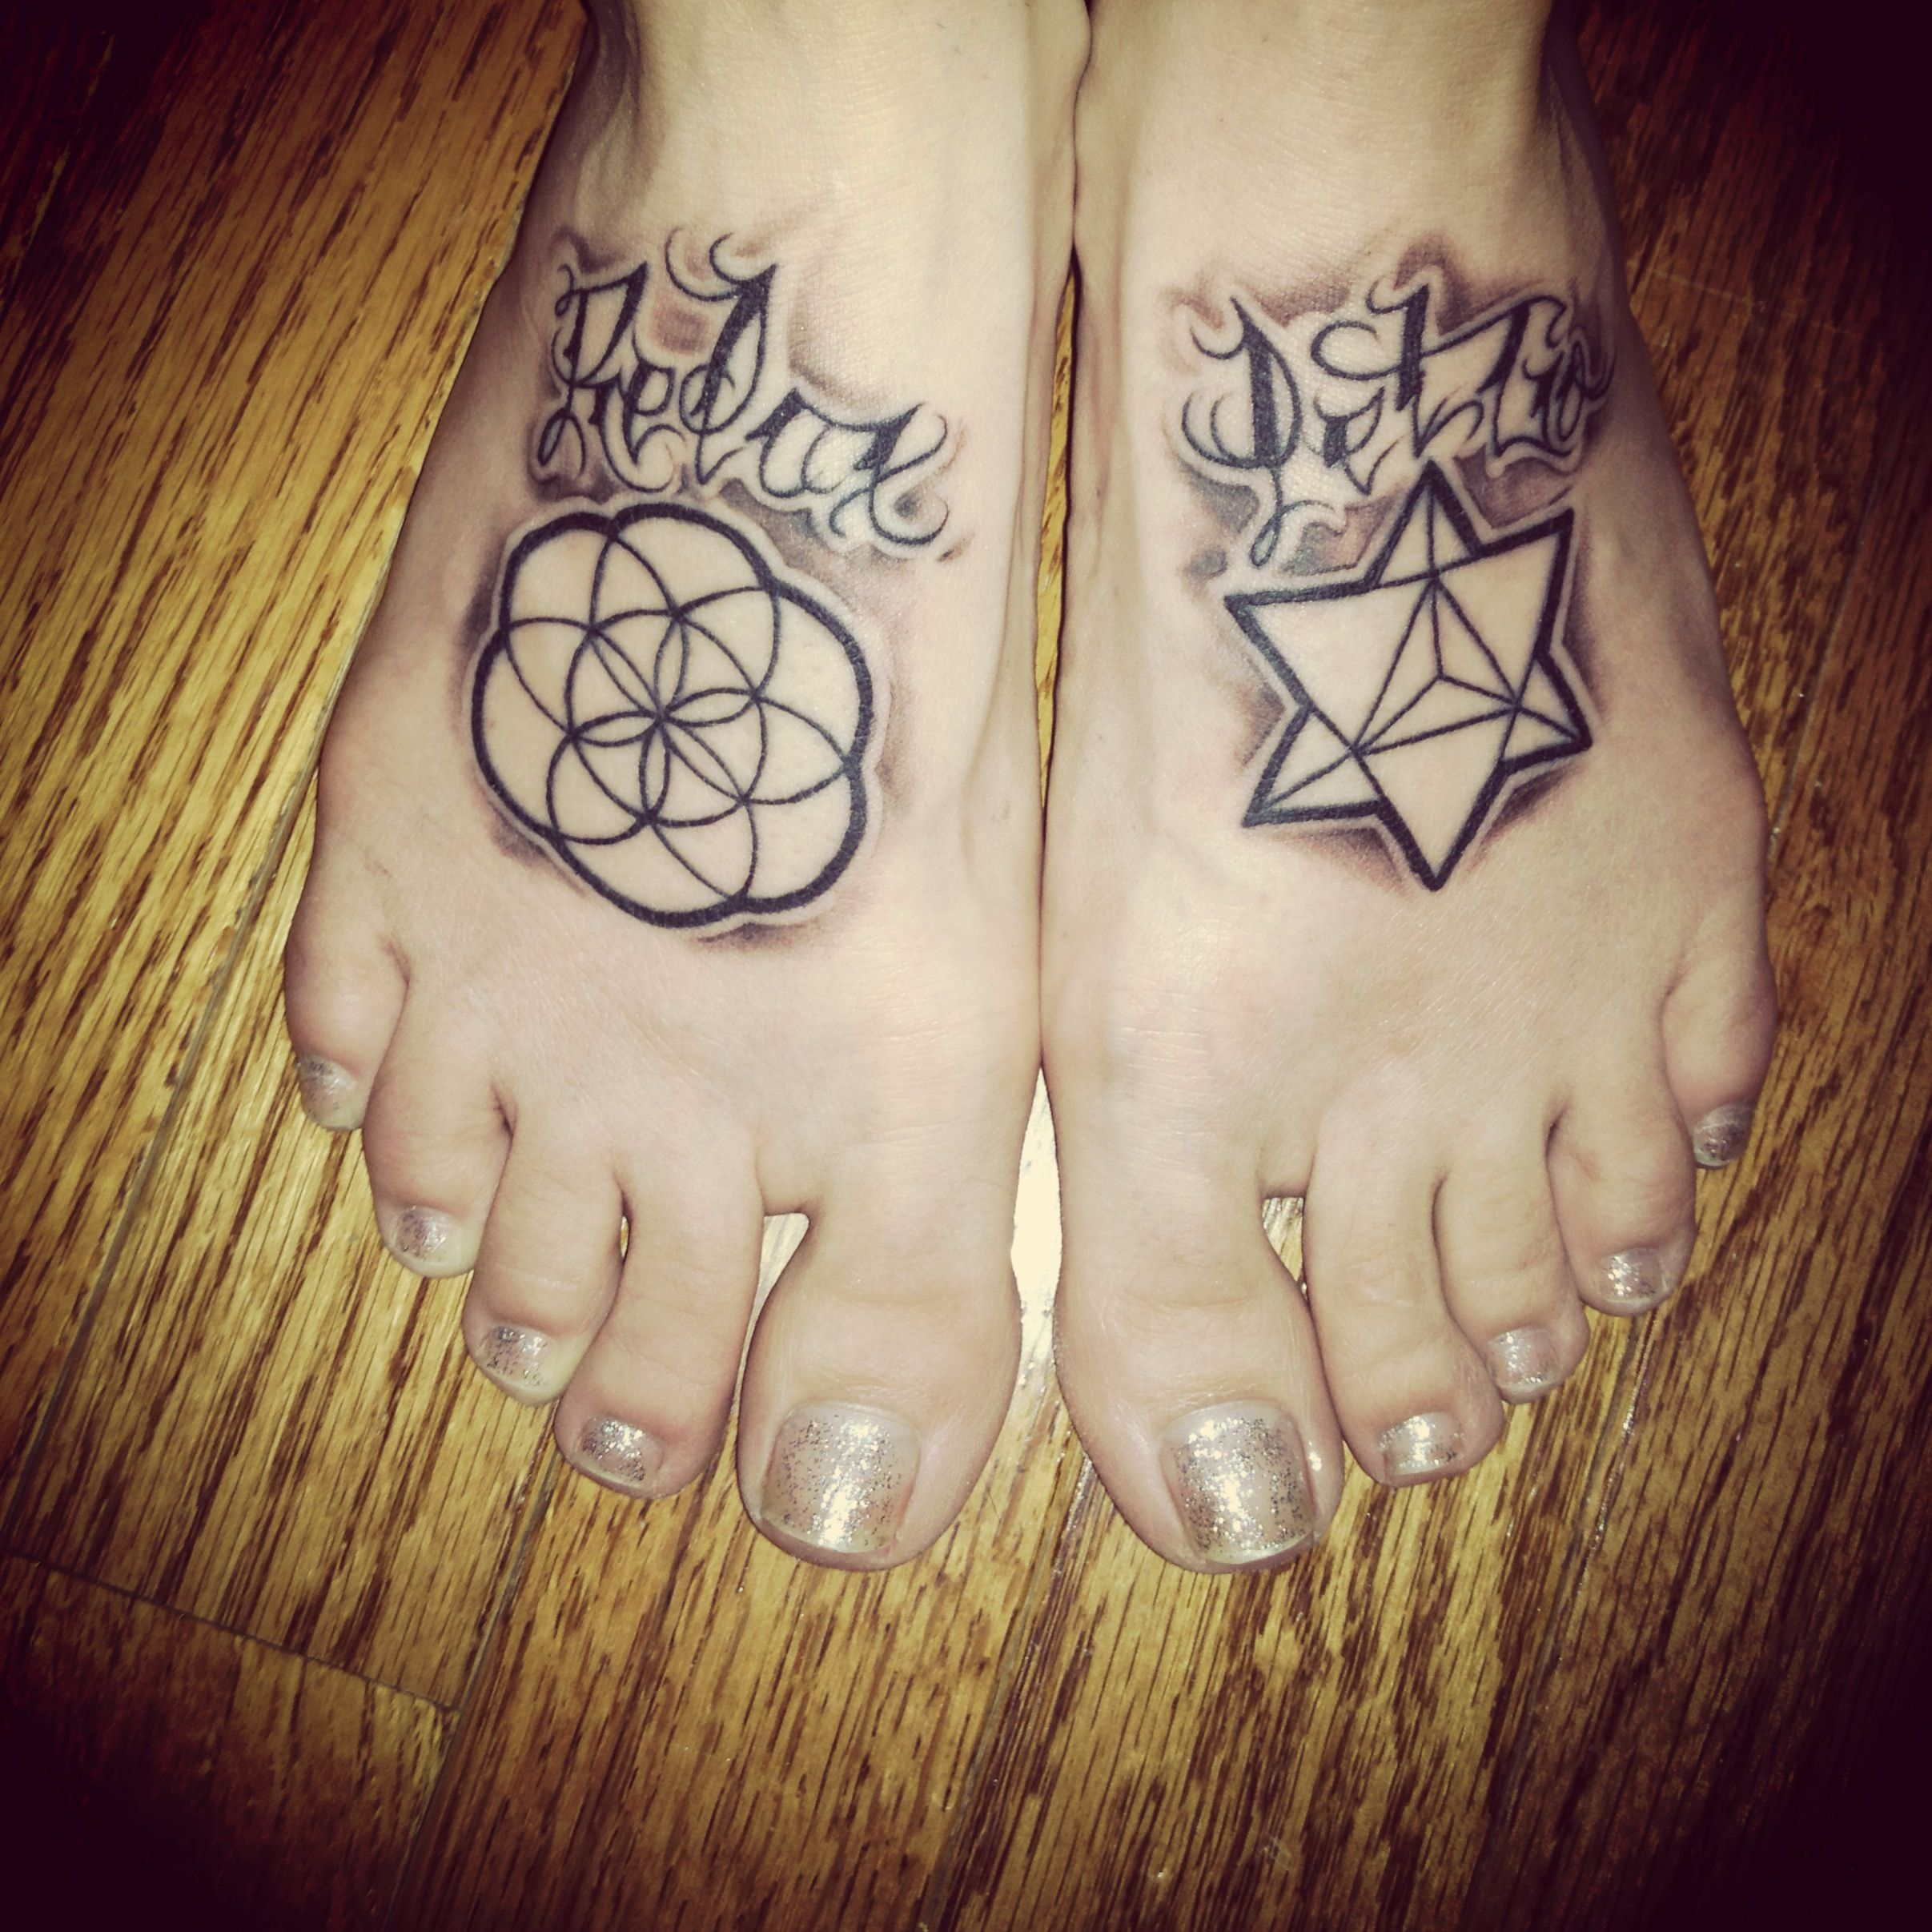 Relax and Let go #tattoo #seedoflife #merkaba | Tattoos ...